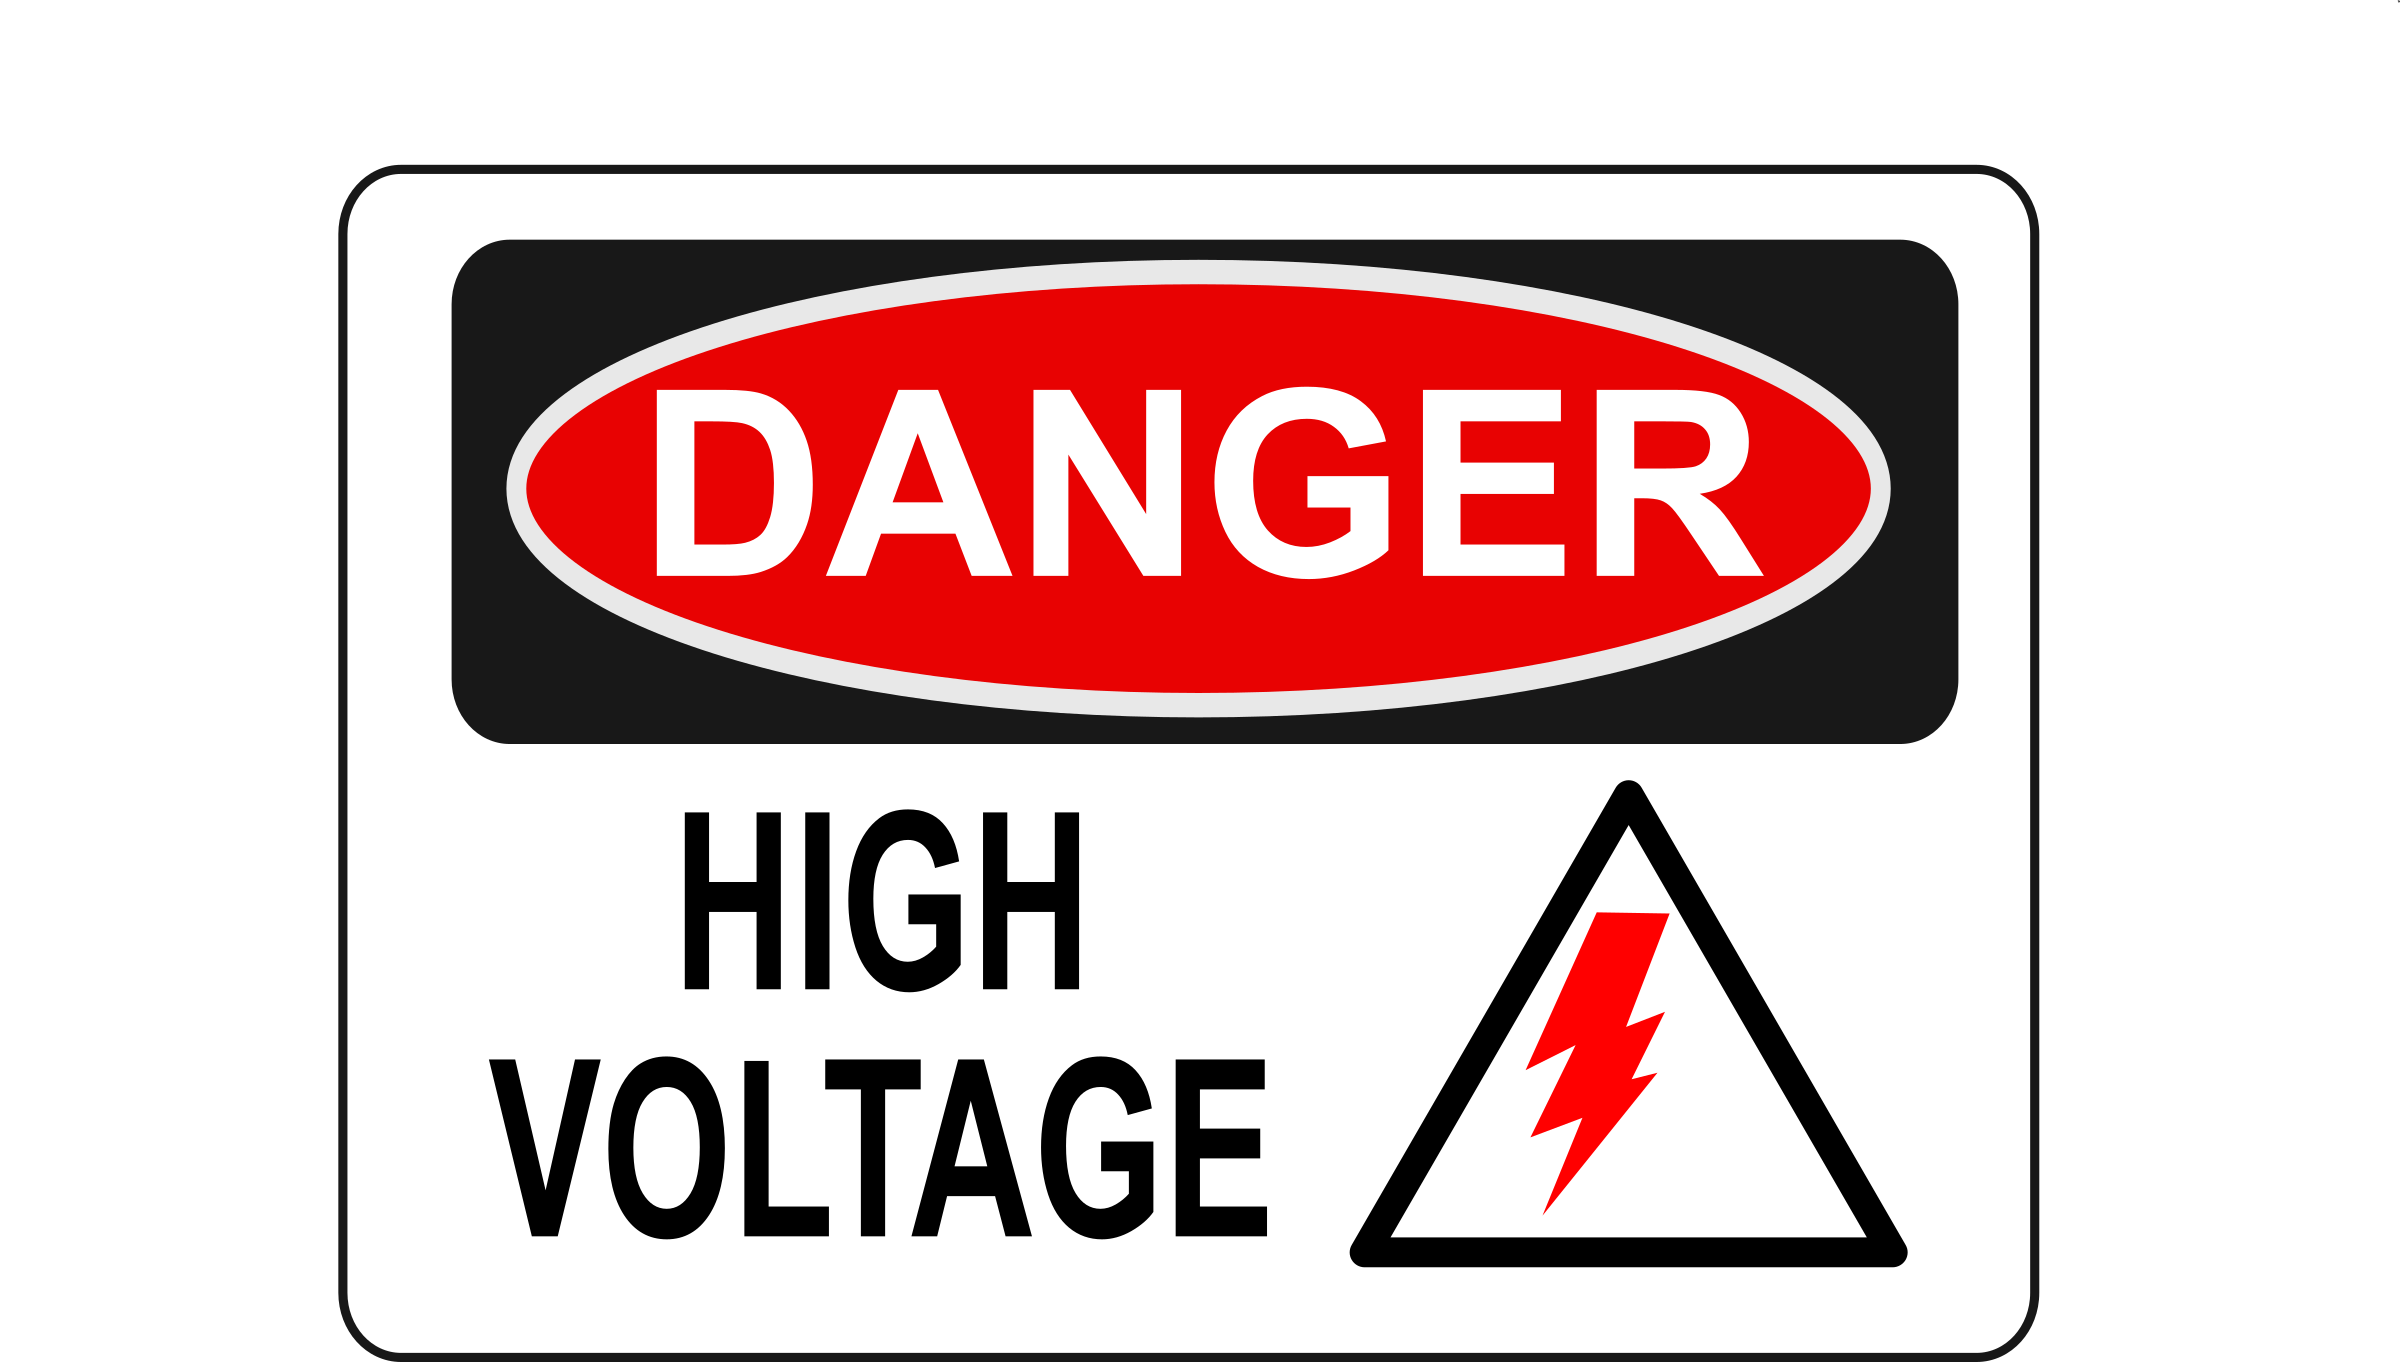 Danger - High Voltage (Alt 2) by Rfc1394